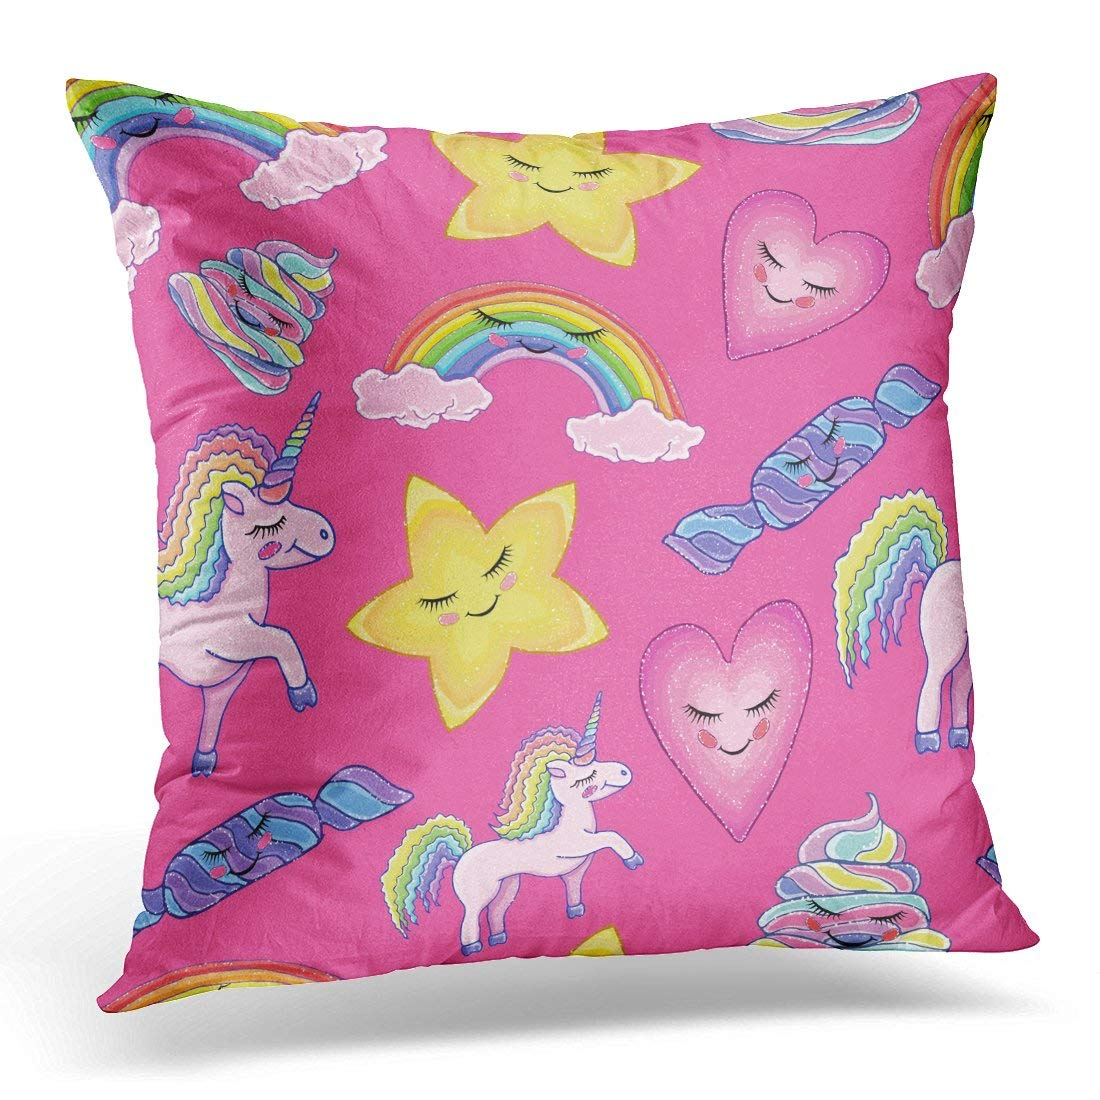 USART Colorful Animal Pattern Unicorn Rainbow Clouds Star Heart Candy Poop Magic Pink Design Child Holiday Pillow Case Pillow Cover 20x20 inch